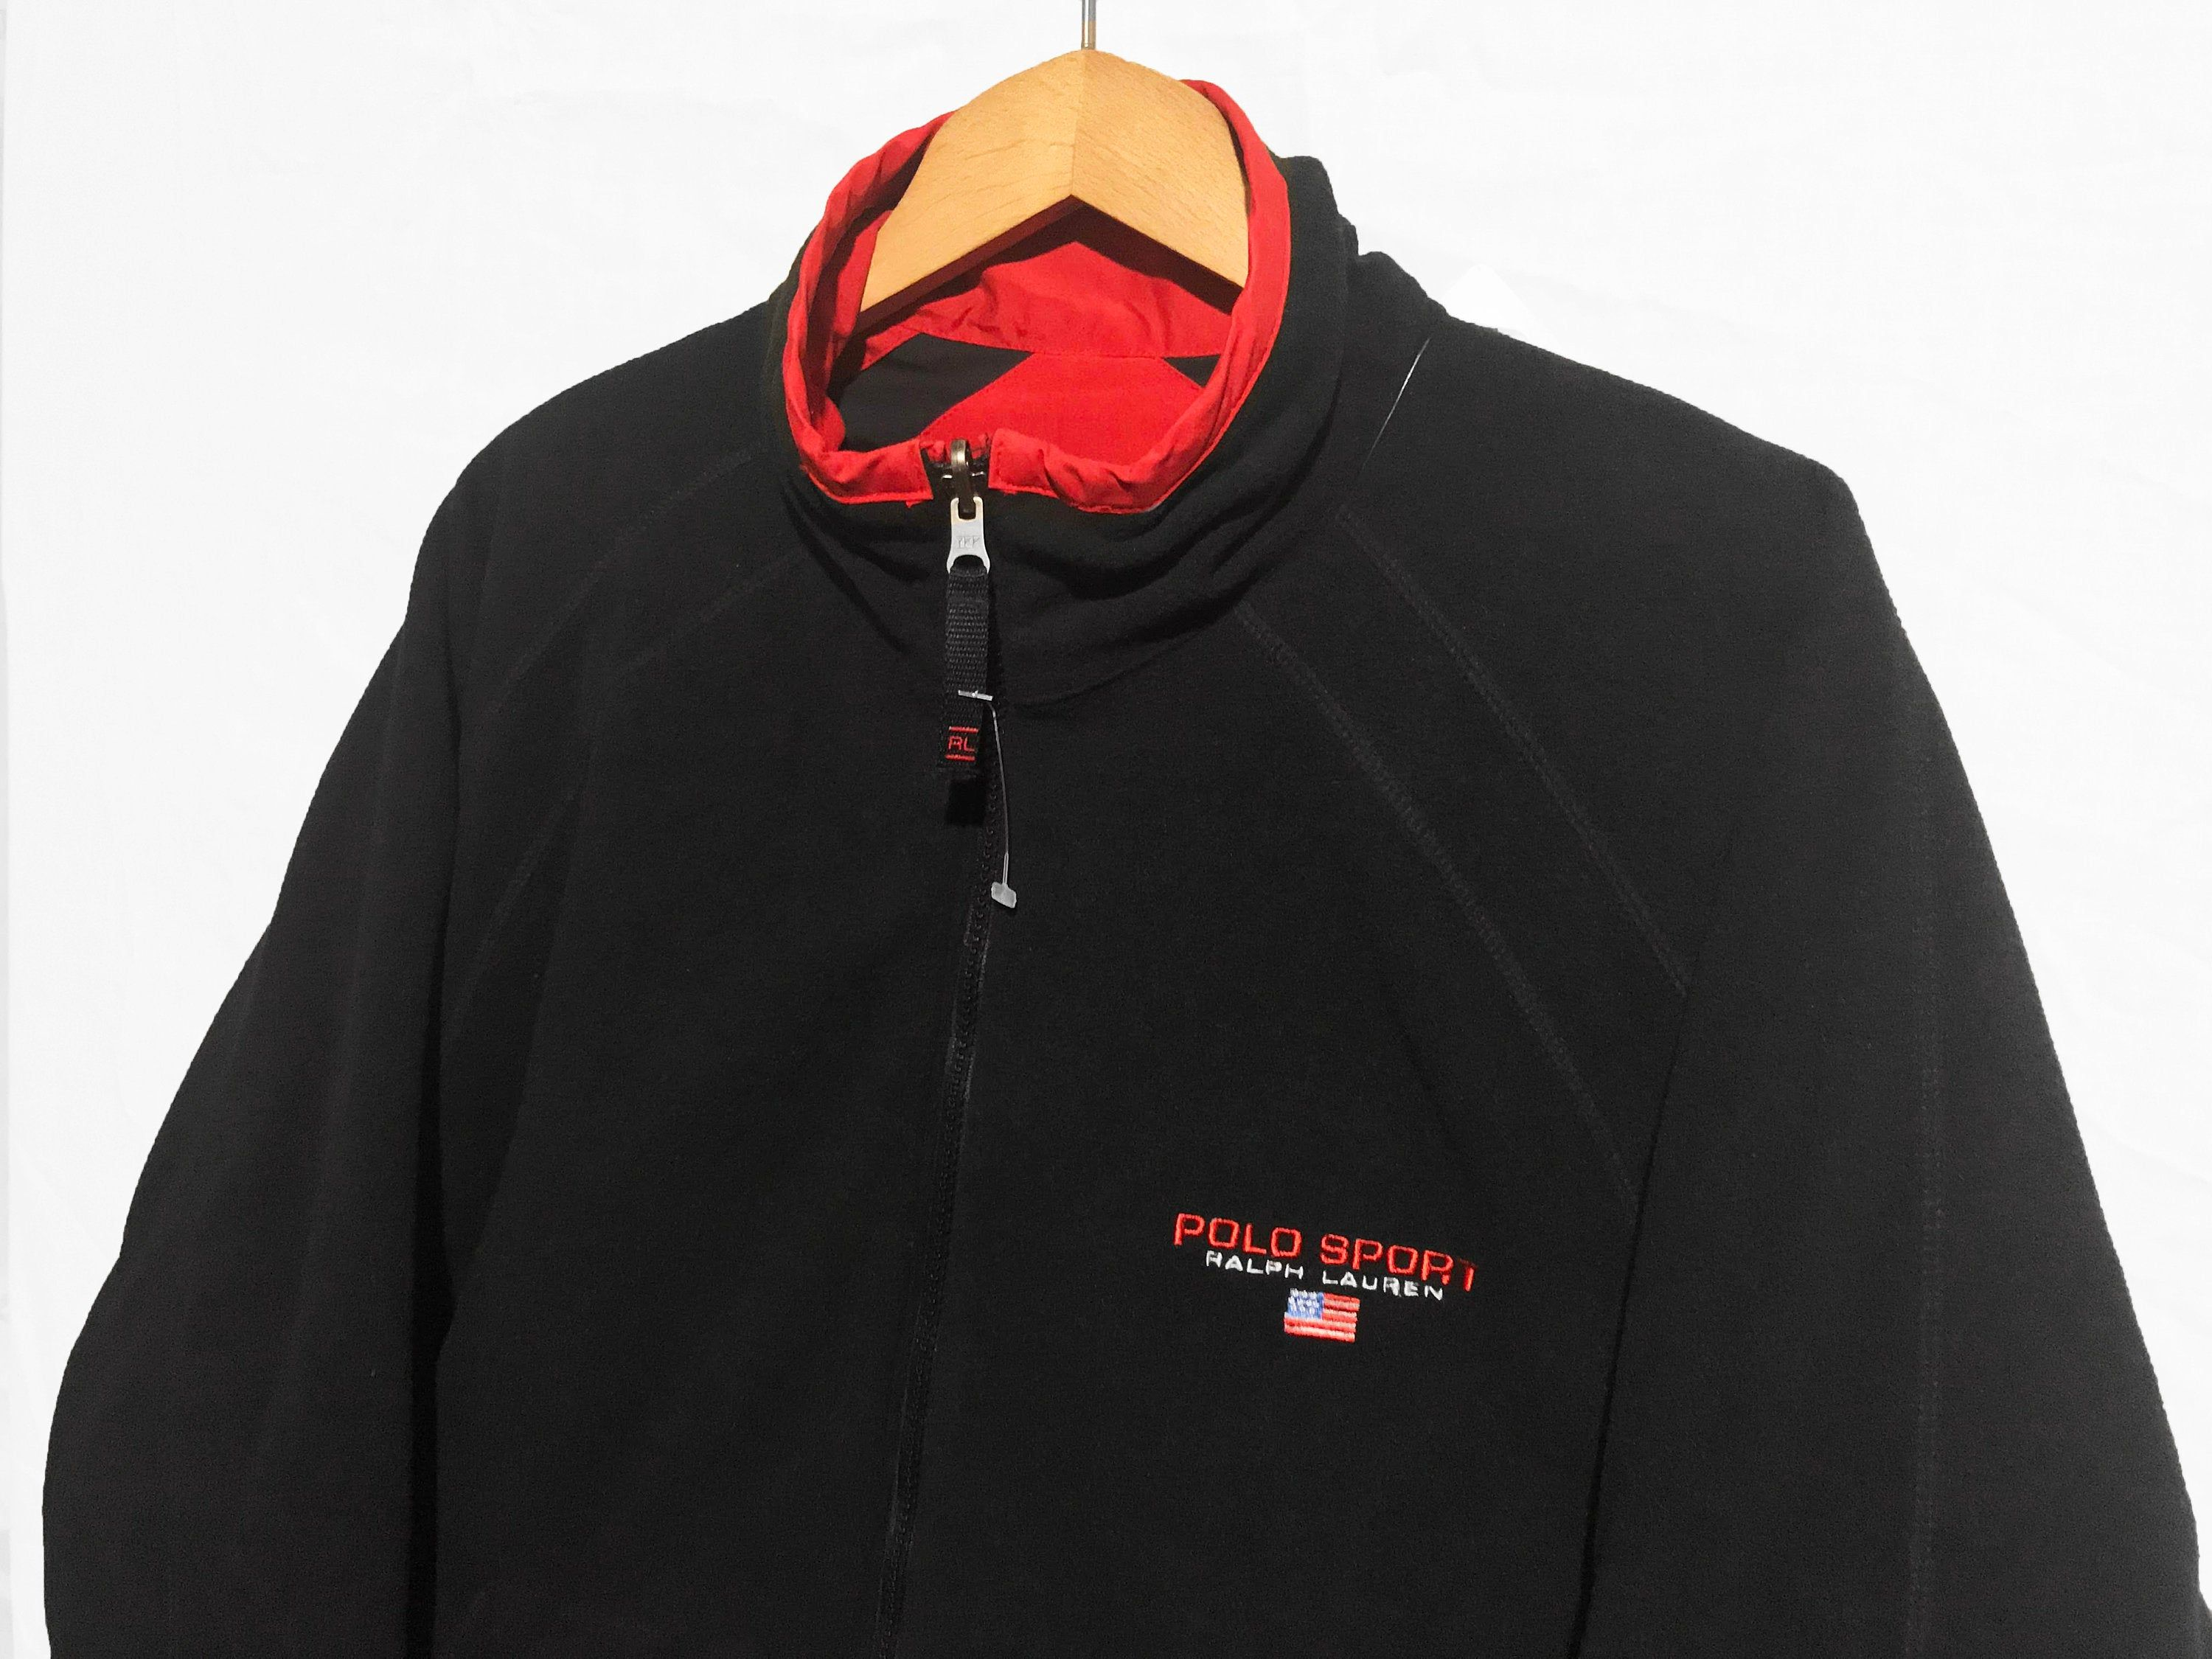 Vintage Polo Sport Reversible Jacket Black Red Size M New Etsy Reversible Jackets Vintage Polo Black And Red [ 2250 x 3000 Pixel ]